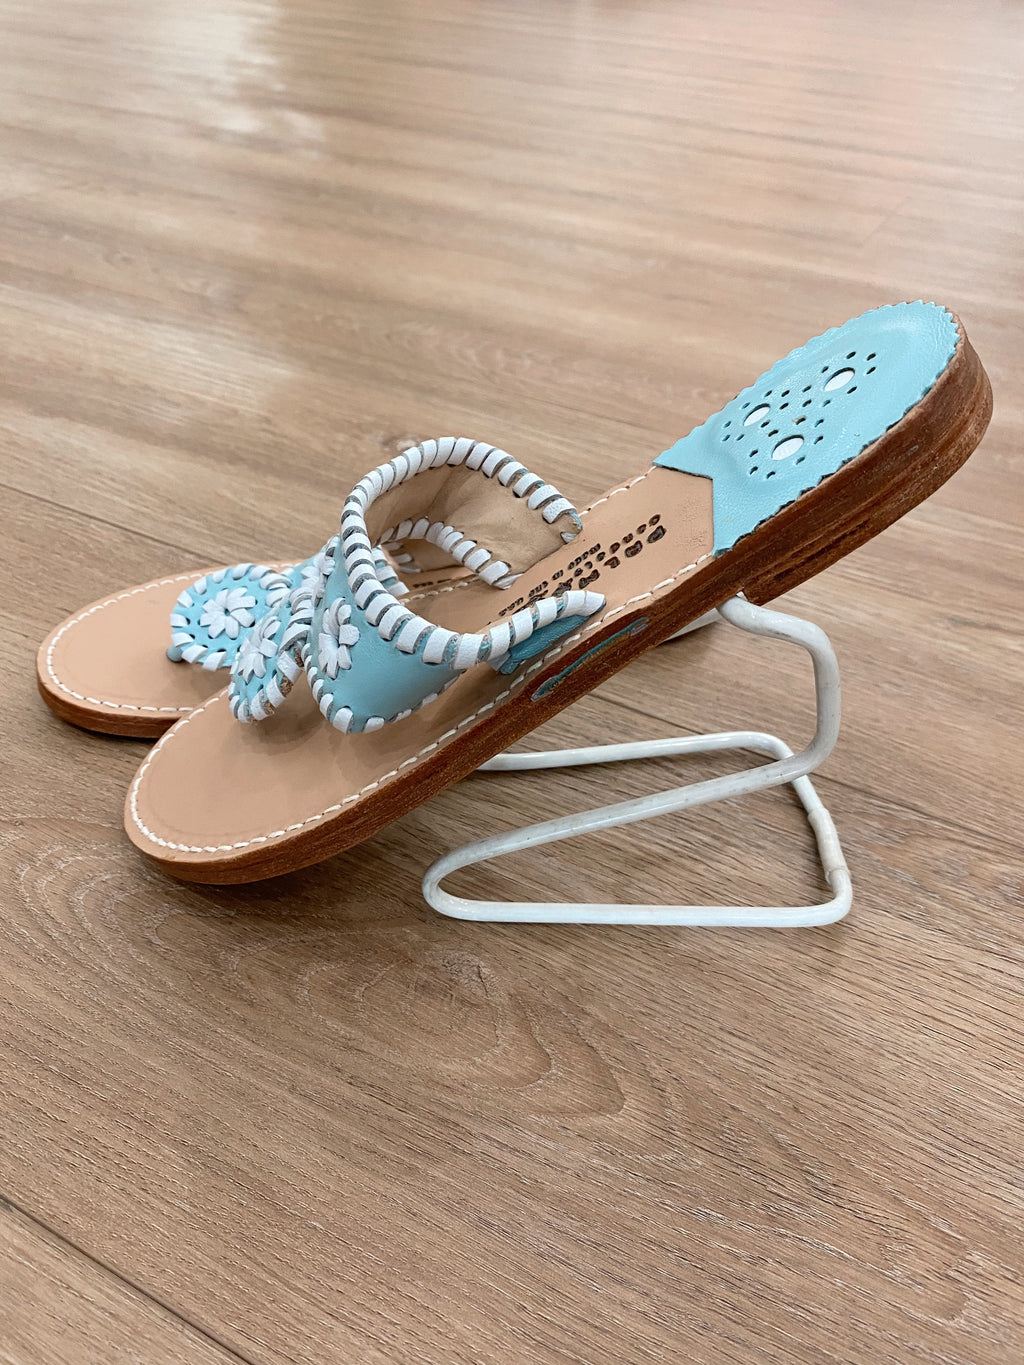 .Palm Beach Blue & White Sandals